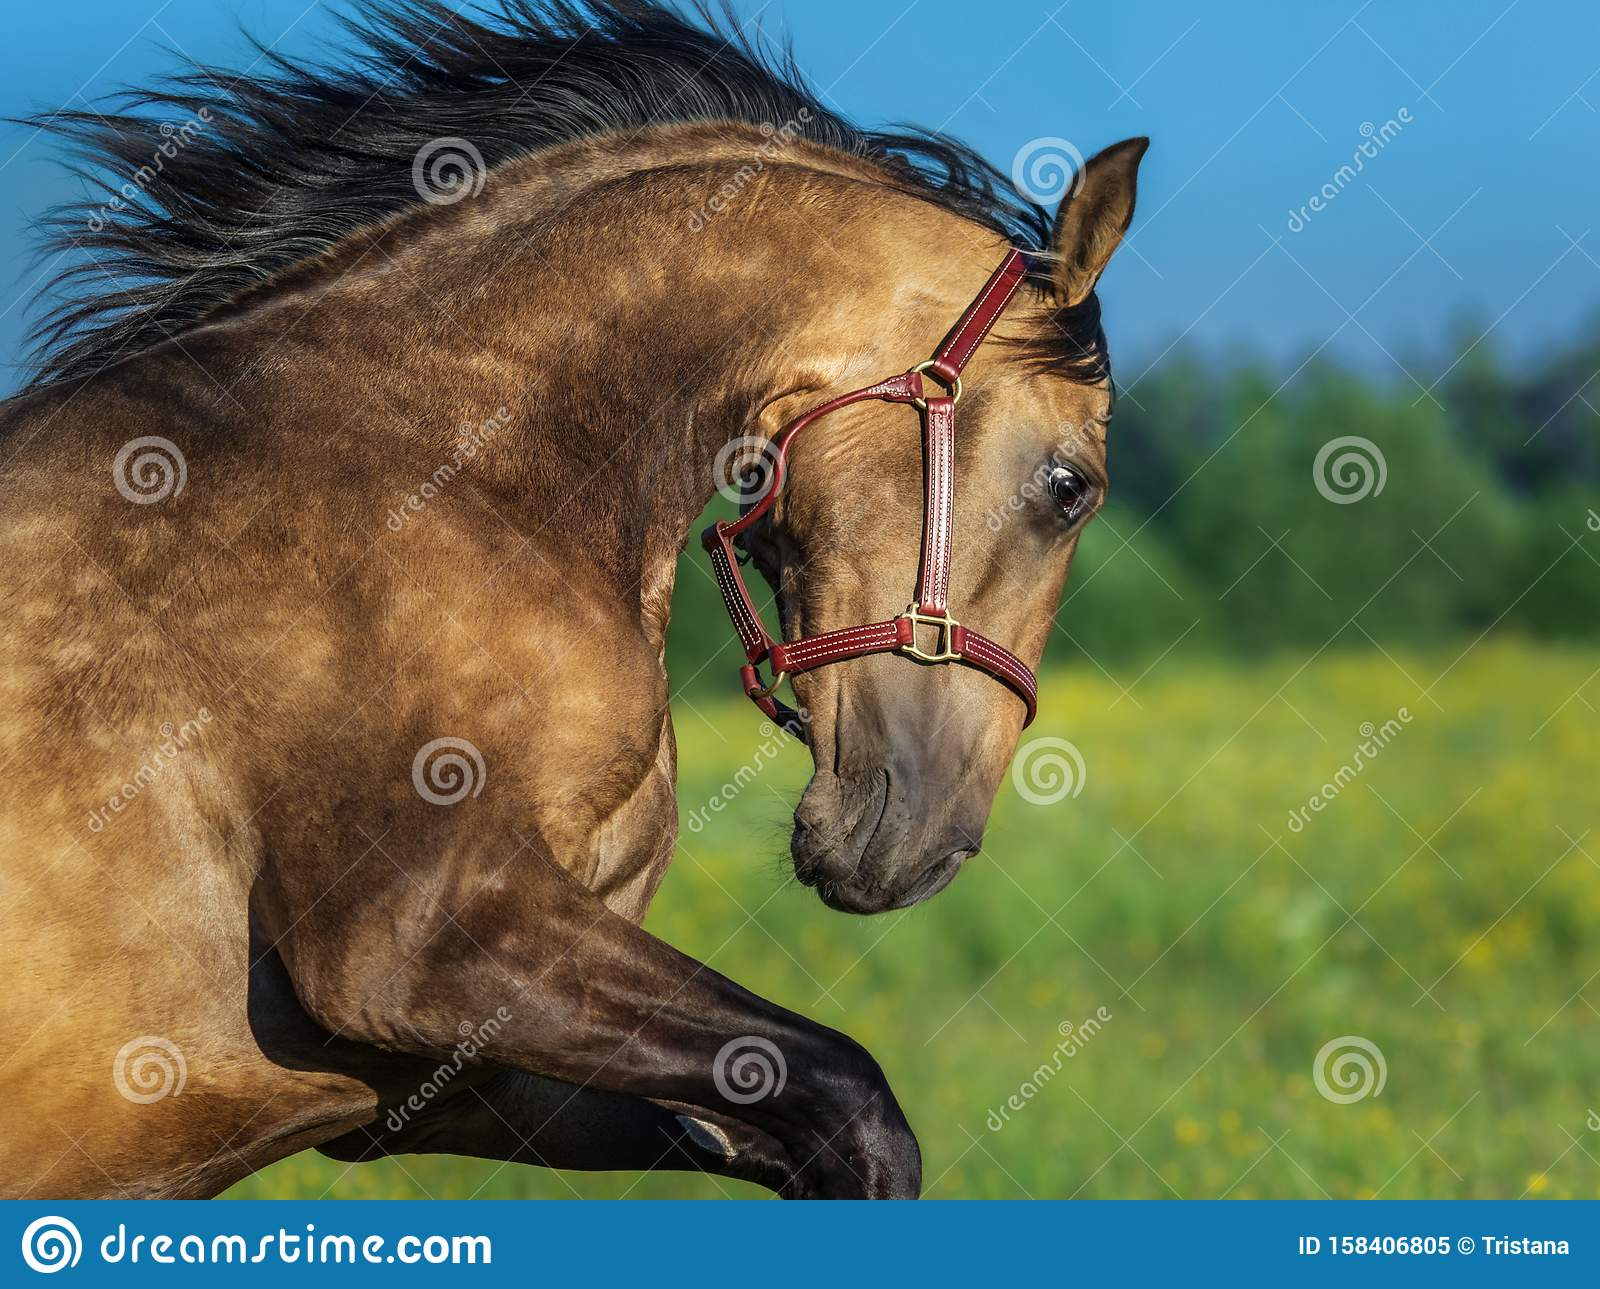 14 399 Golden Horse Photos Free Royalty Free Stock Photos From Dreamstime